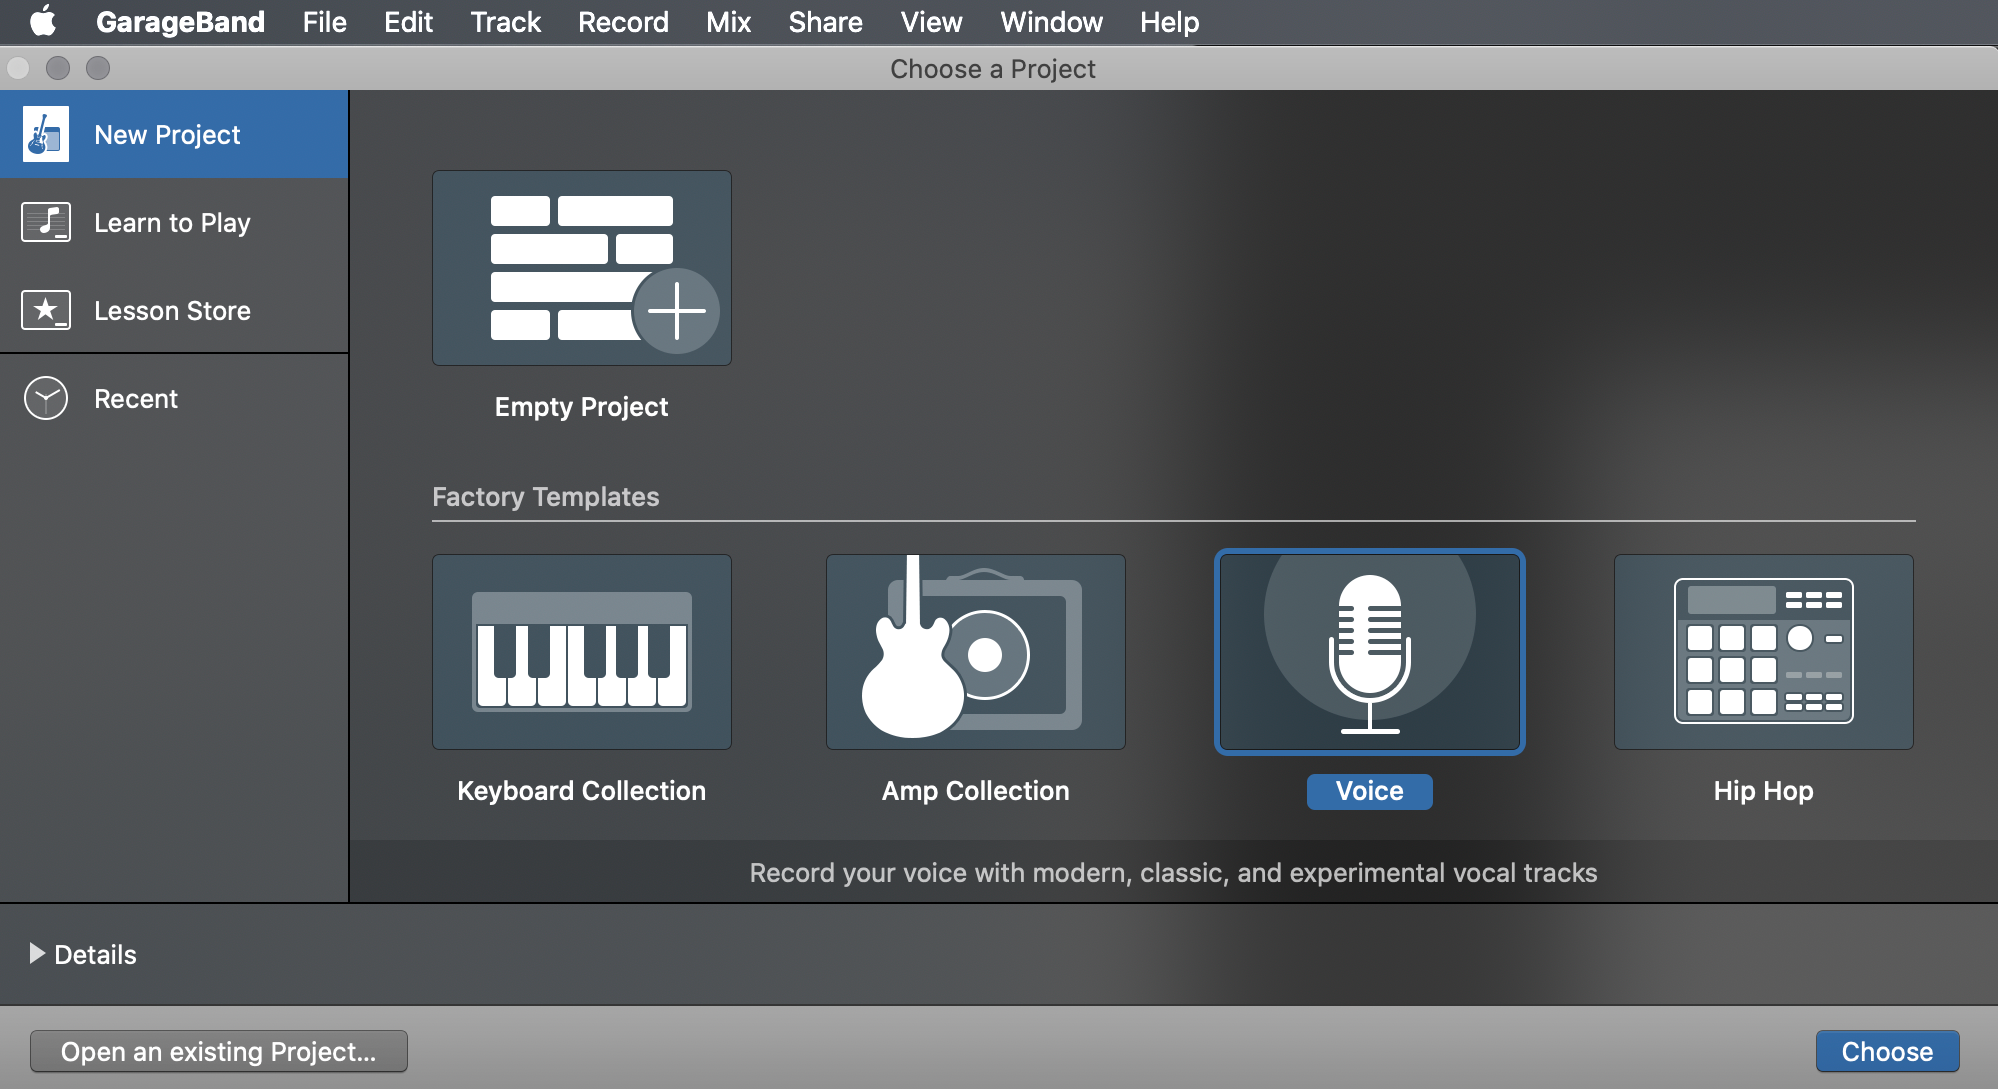 Screenshot demonstrating how to create a new project in GarageBand